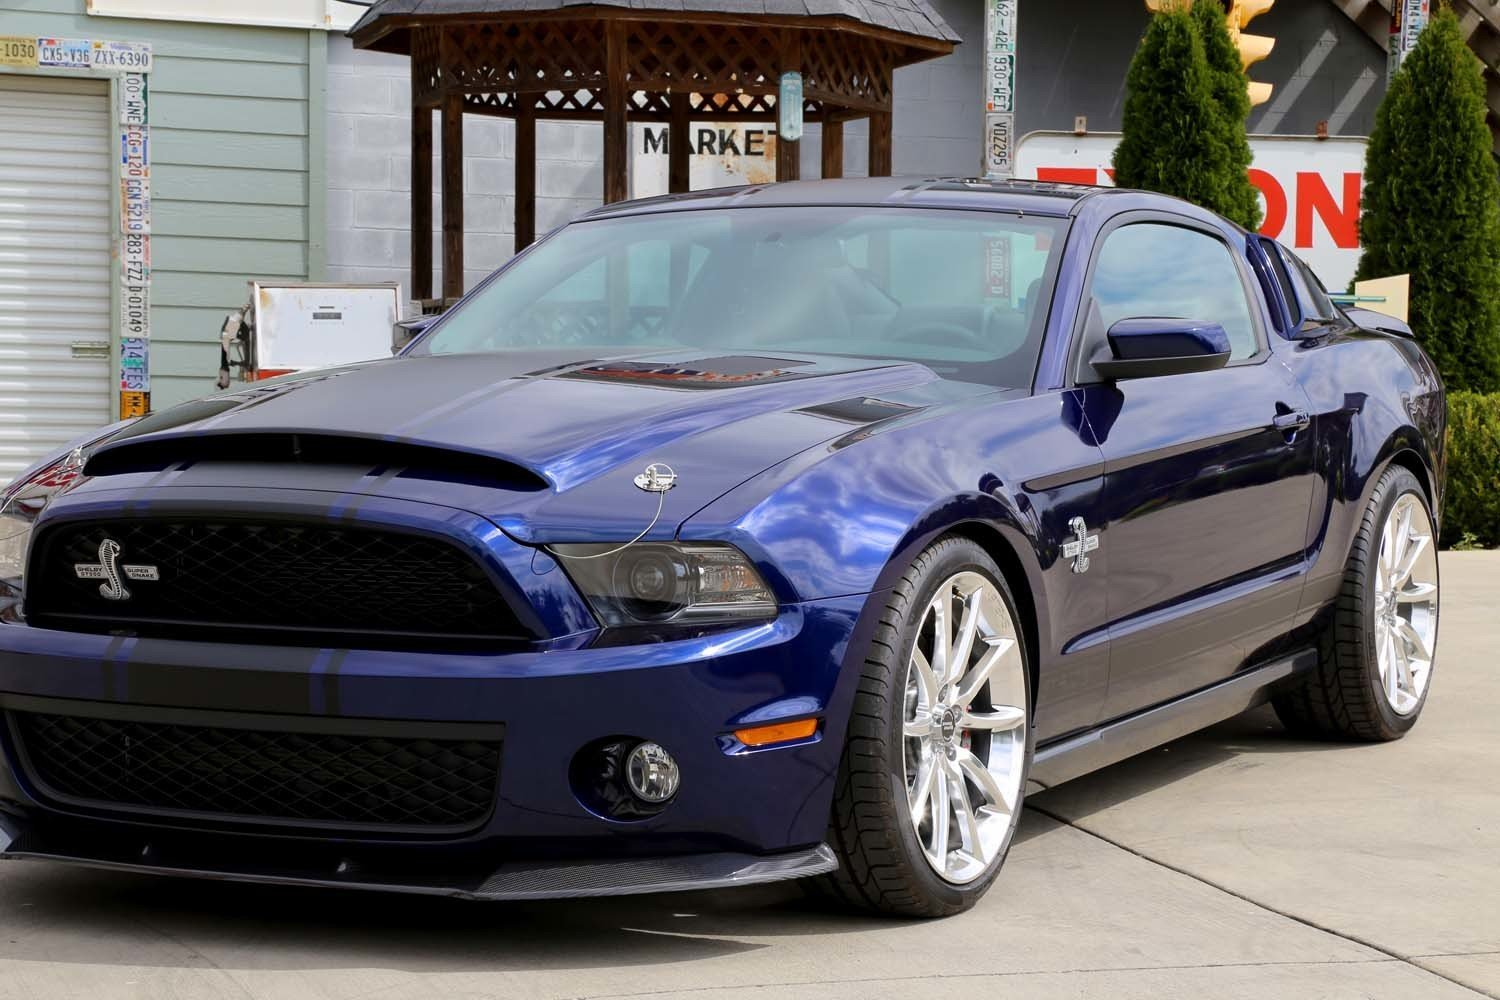 2010 Ford Mustang For Sale >> 2010 Ford Mustang Shelby GT 500 Super Snake for sale ...